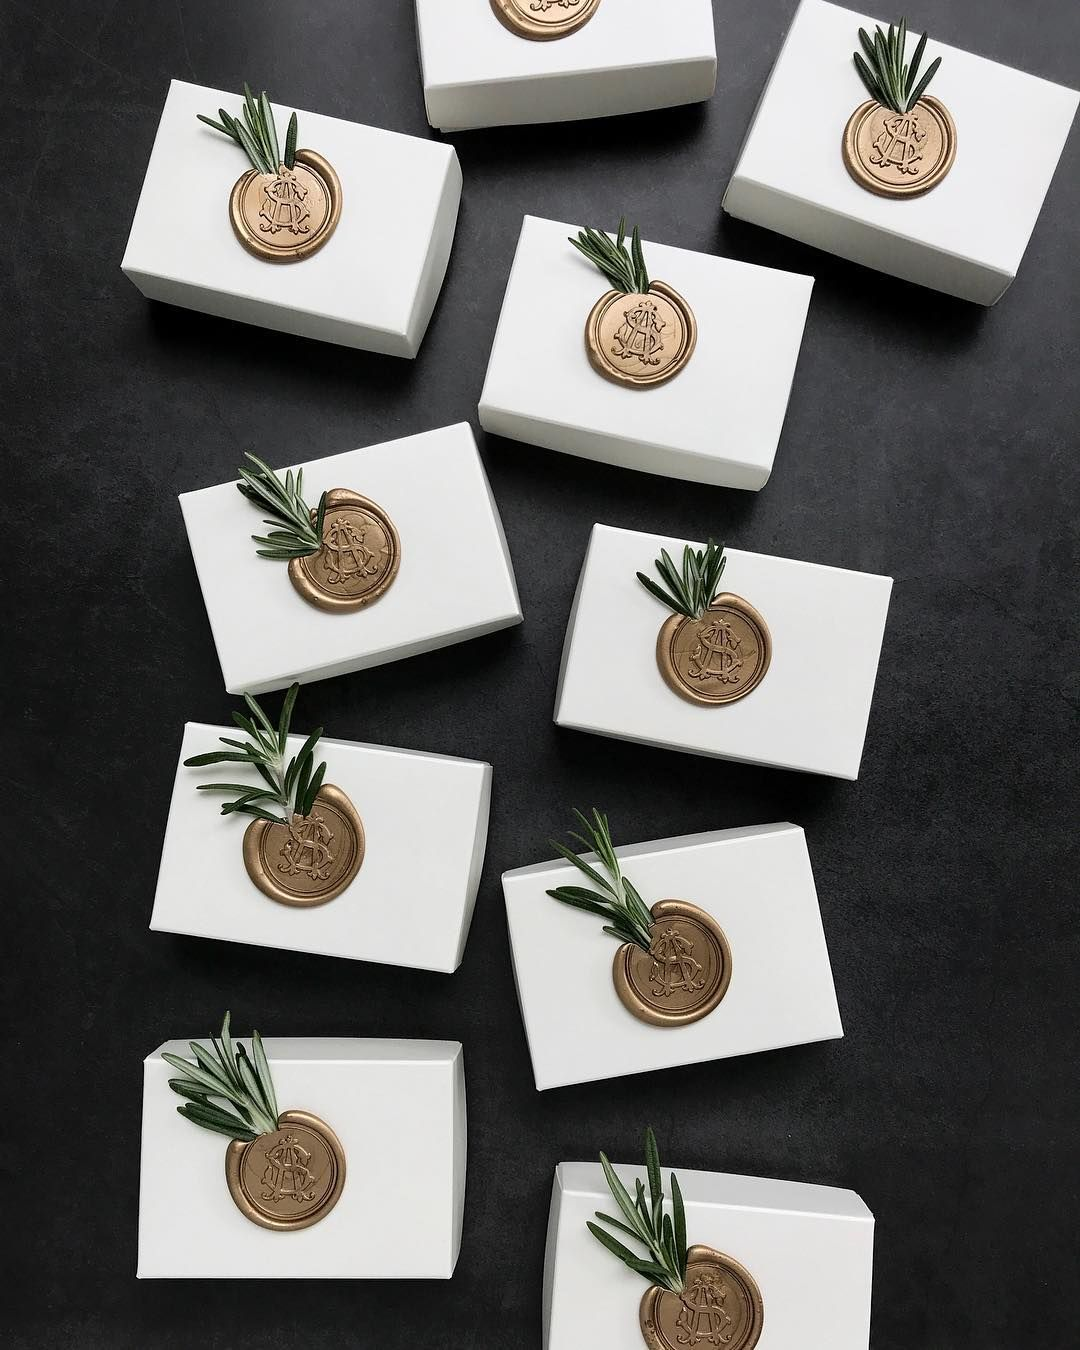 We are obsessed with this perfect combo of rosemary and wax seal.